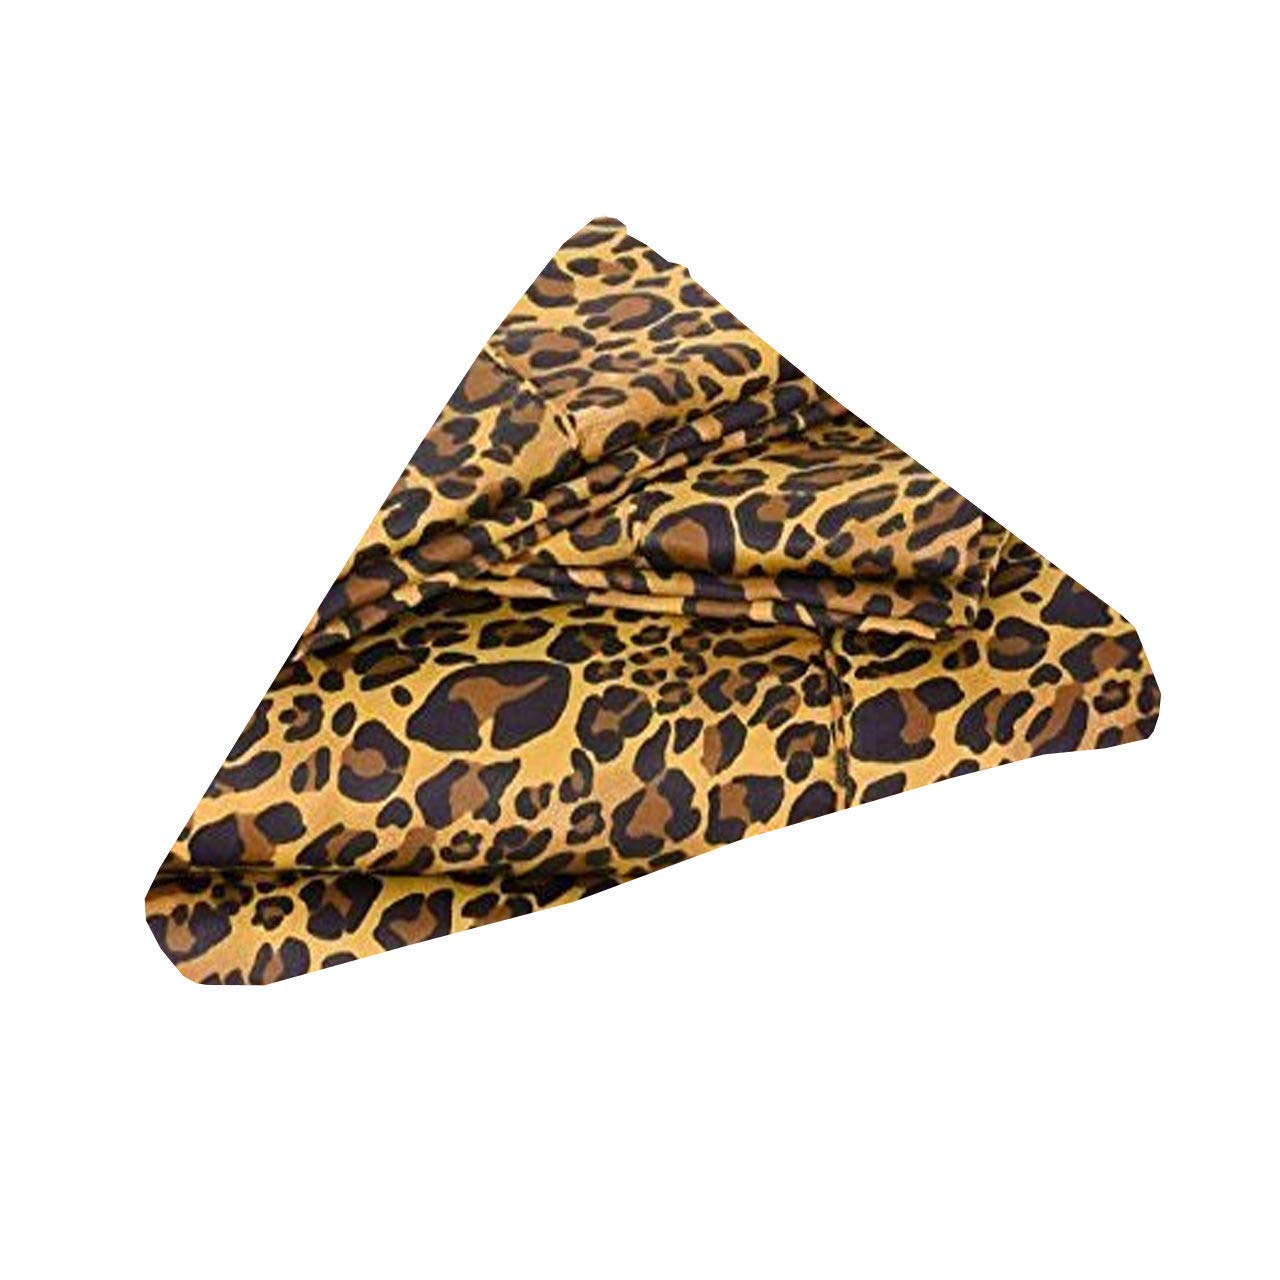 Cotton Napkins - Pack of 20 (18 x 18 inch) Cloth Dinner Table Napkins - Machine Washable, Restaurant/Wedding/Hotel Quality and Regular Home Use 100% Cotton Fabric - Leopard Print